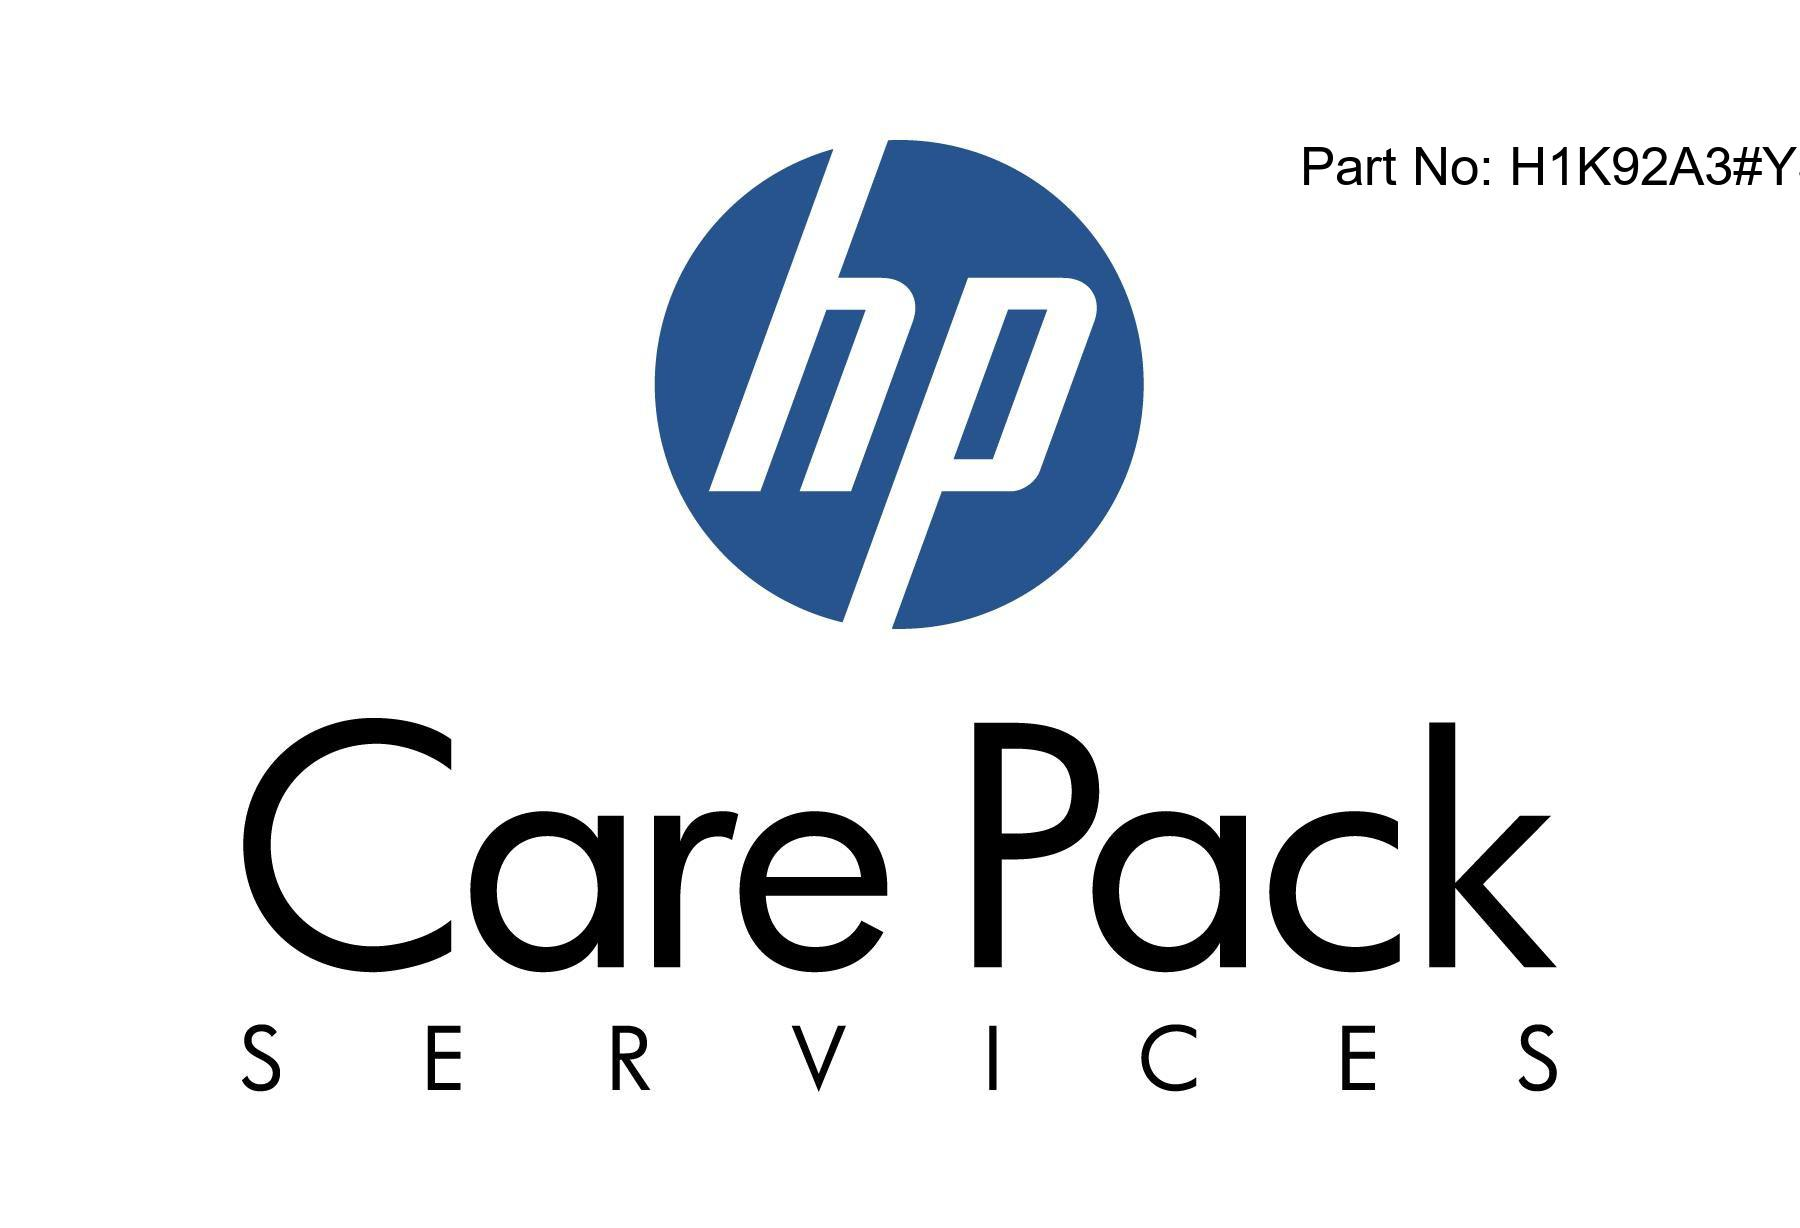 Proactive Care 24x7 Software Service - Technical support - for SuSE Linux Enterprise Server for SAP with 3 Years 24x7 Support - 1-2 sockets/virtual machines - phone consulting - 3 years - 24x7